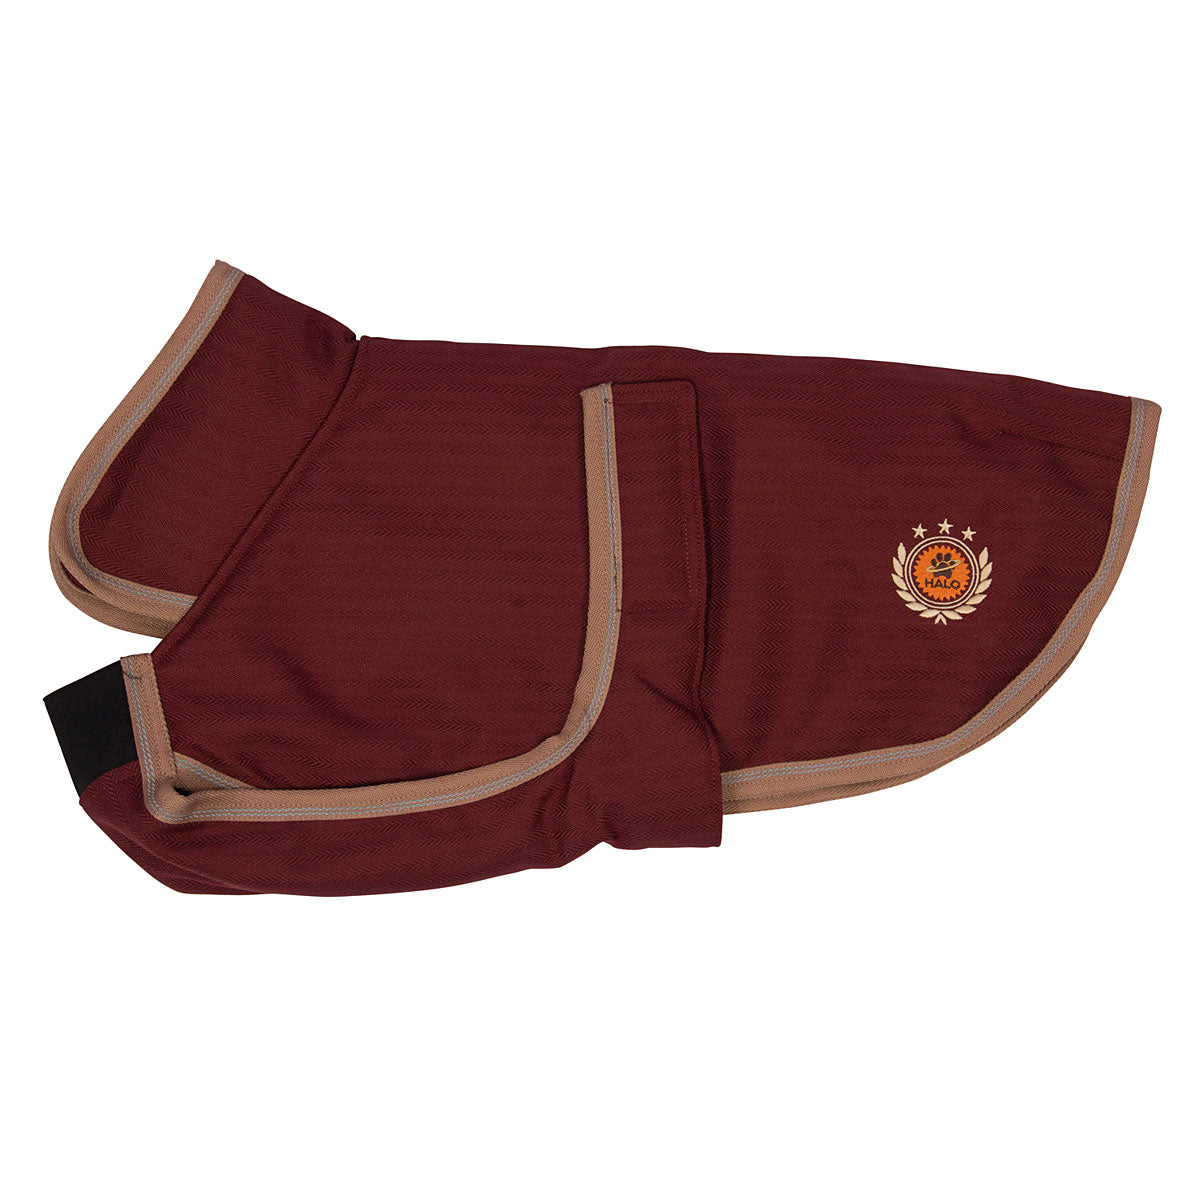 Halo Optima Dog Coat with Collar_2184